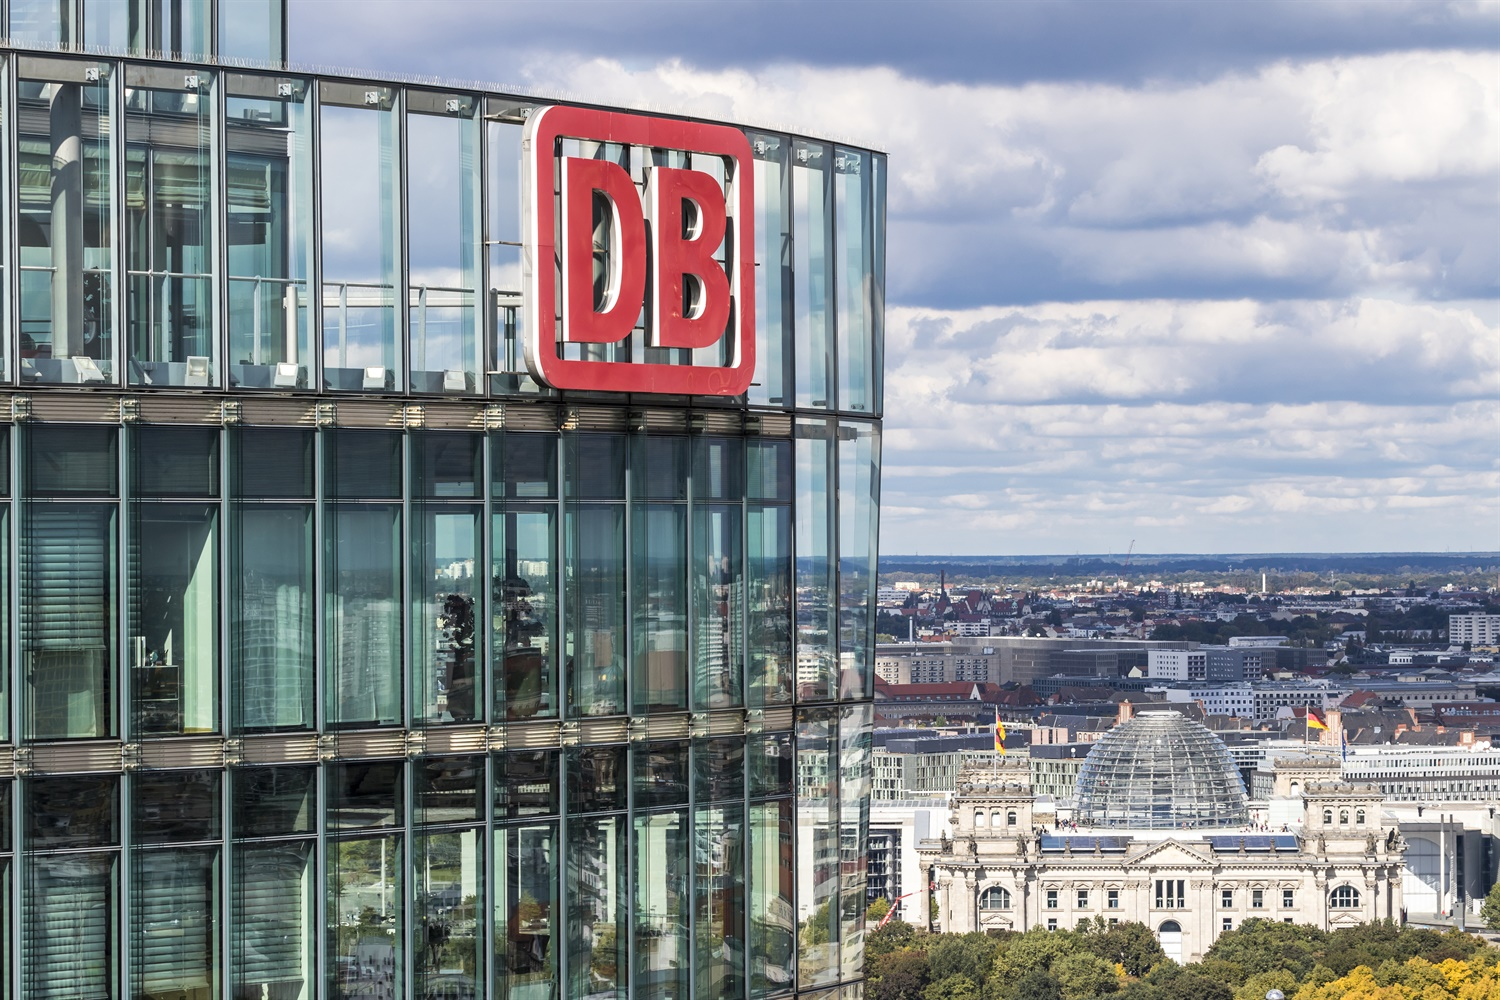 Northern owner Deutsche Bahn wants compensation from Network Rail over extensive delays and disruption